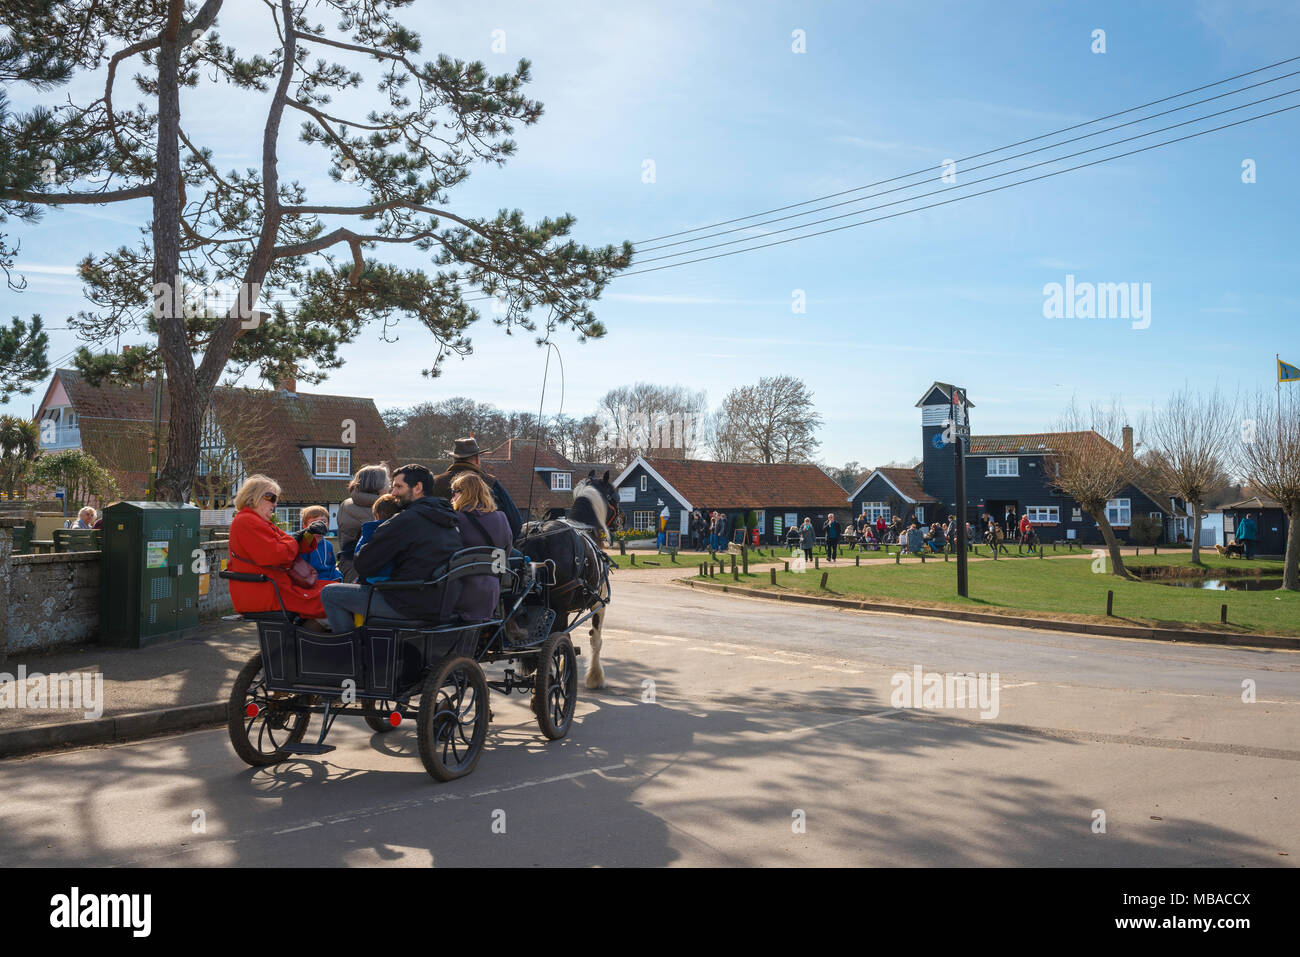 Thorpeness Suffolk, visitors to Thorpeness in Suffolk enjoy a pony and trap ride around the centre of the village, England, UK. - Stock Image